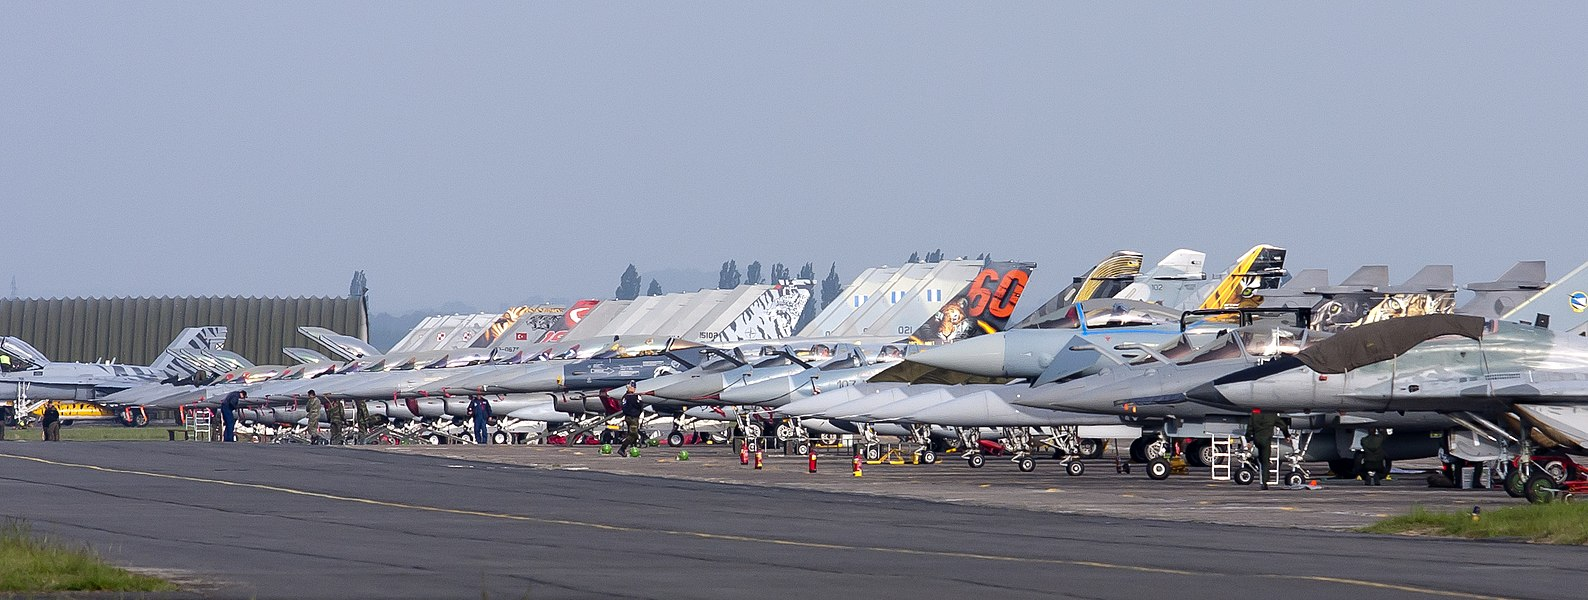 A great part of the flightline at Cambrai during the last Tiger Meet before the base closed.  16 May 2011.